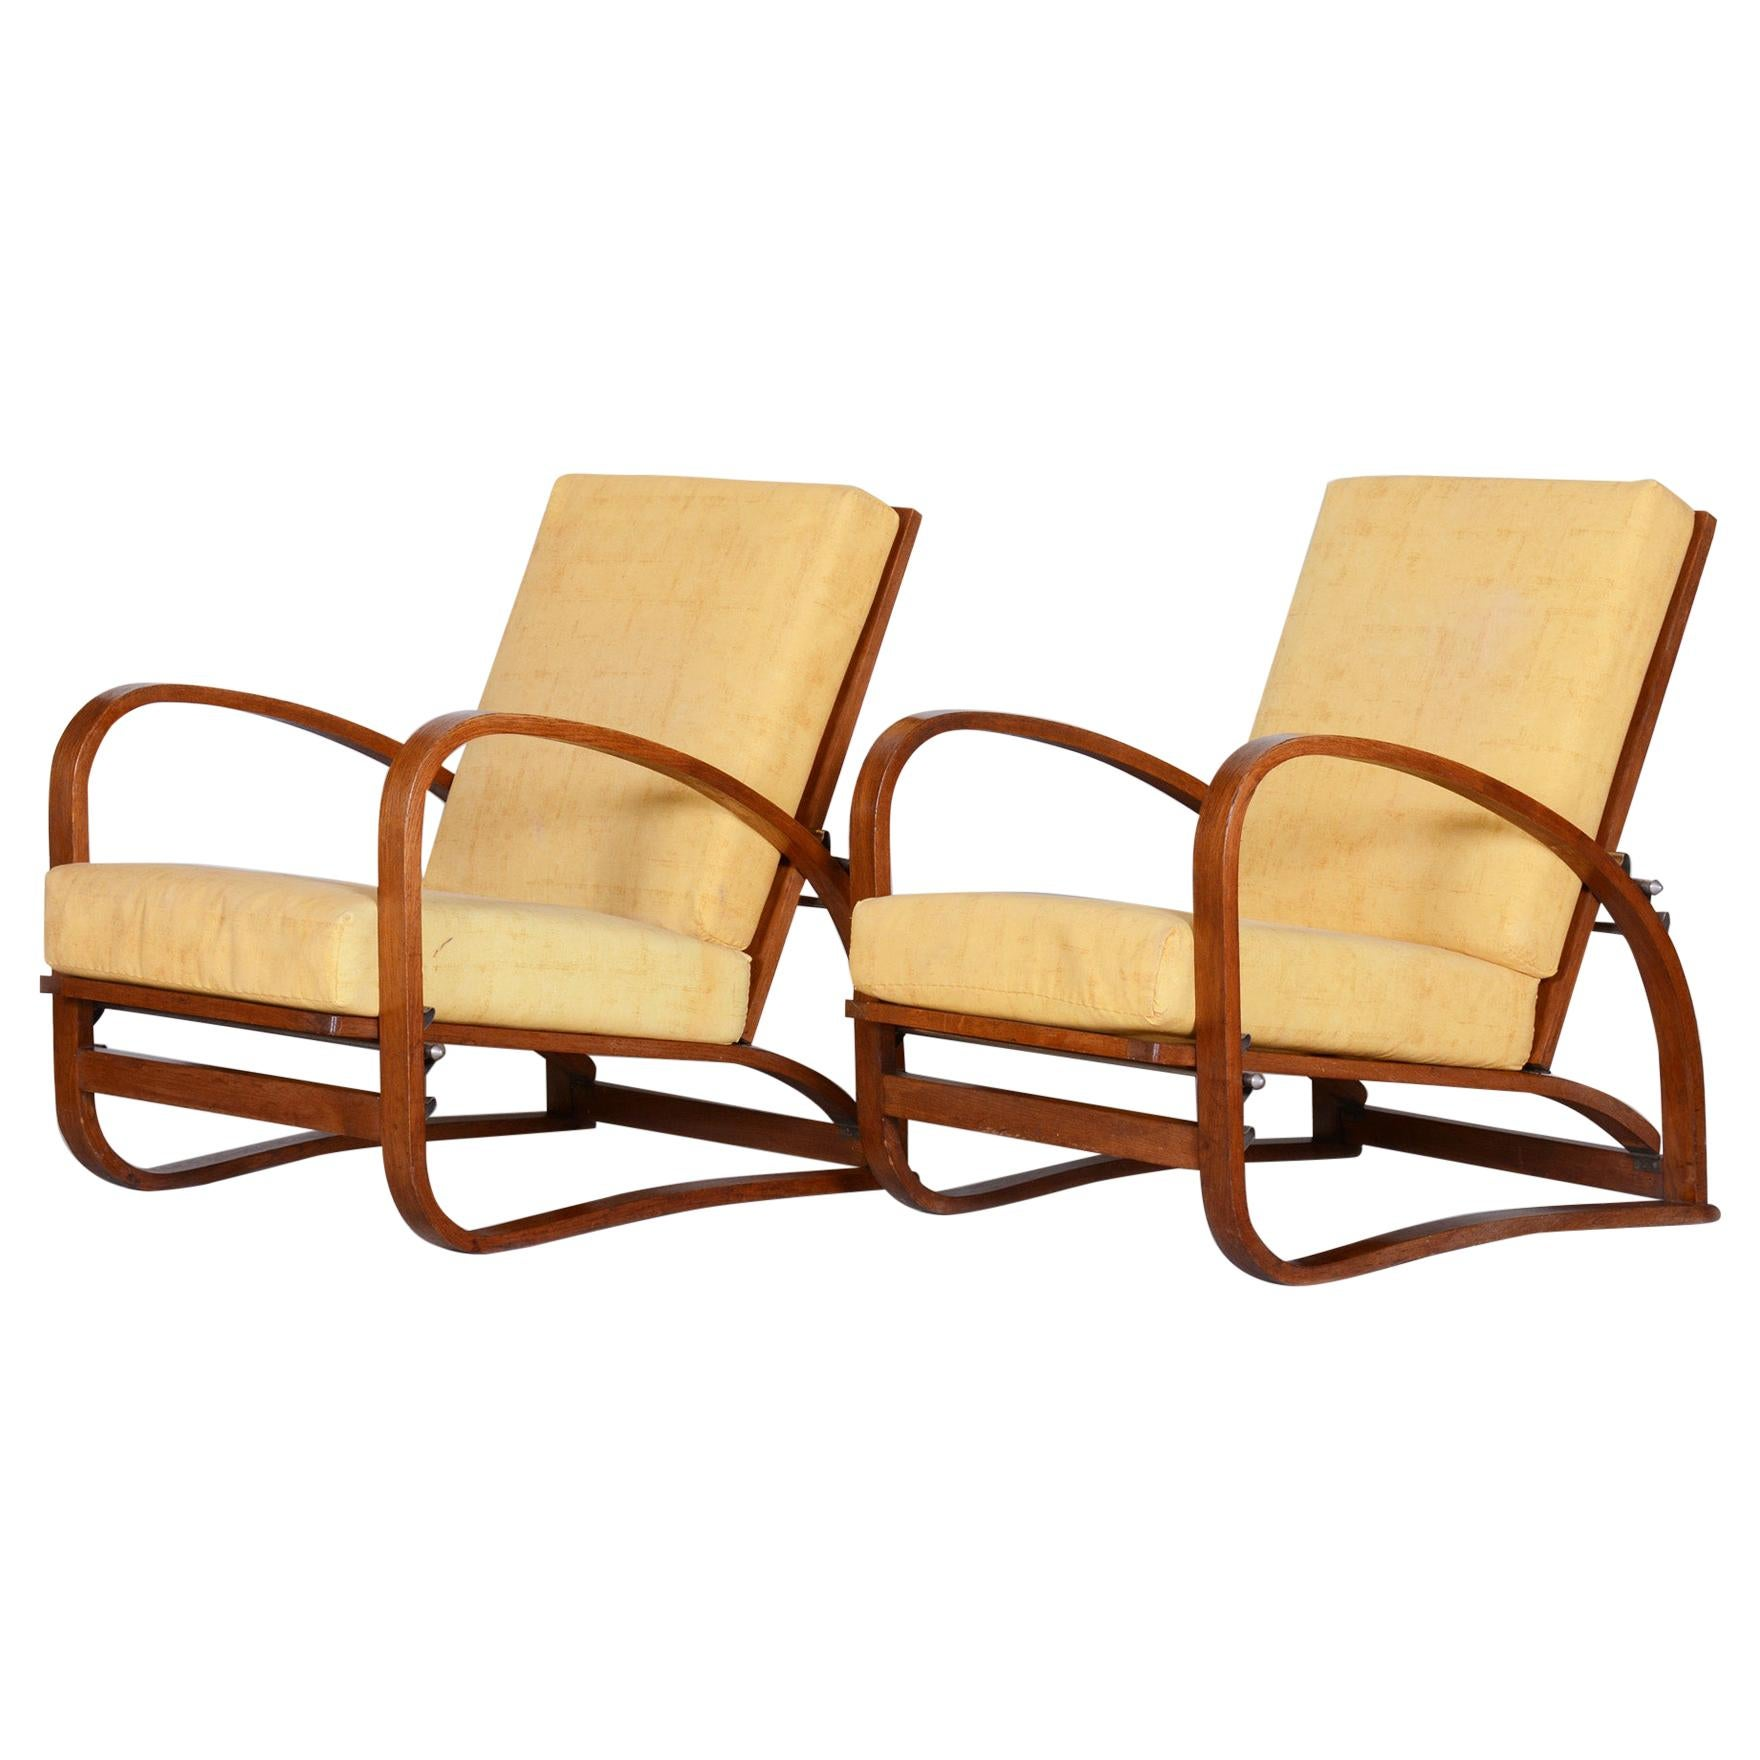 Pair of Oak Art Deco Armchairs by Jindrich Halabala, 1930s, Original Condition